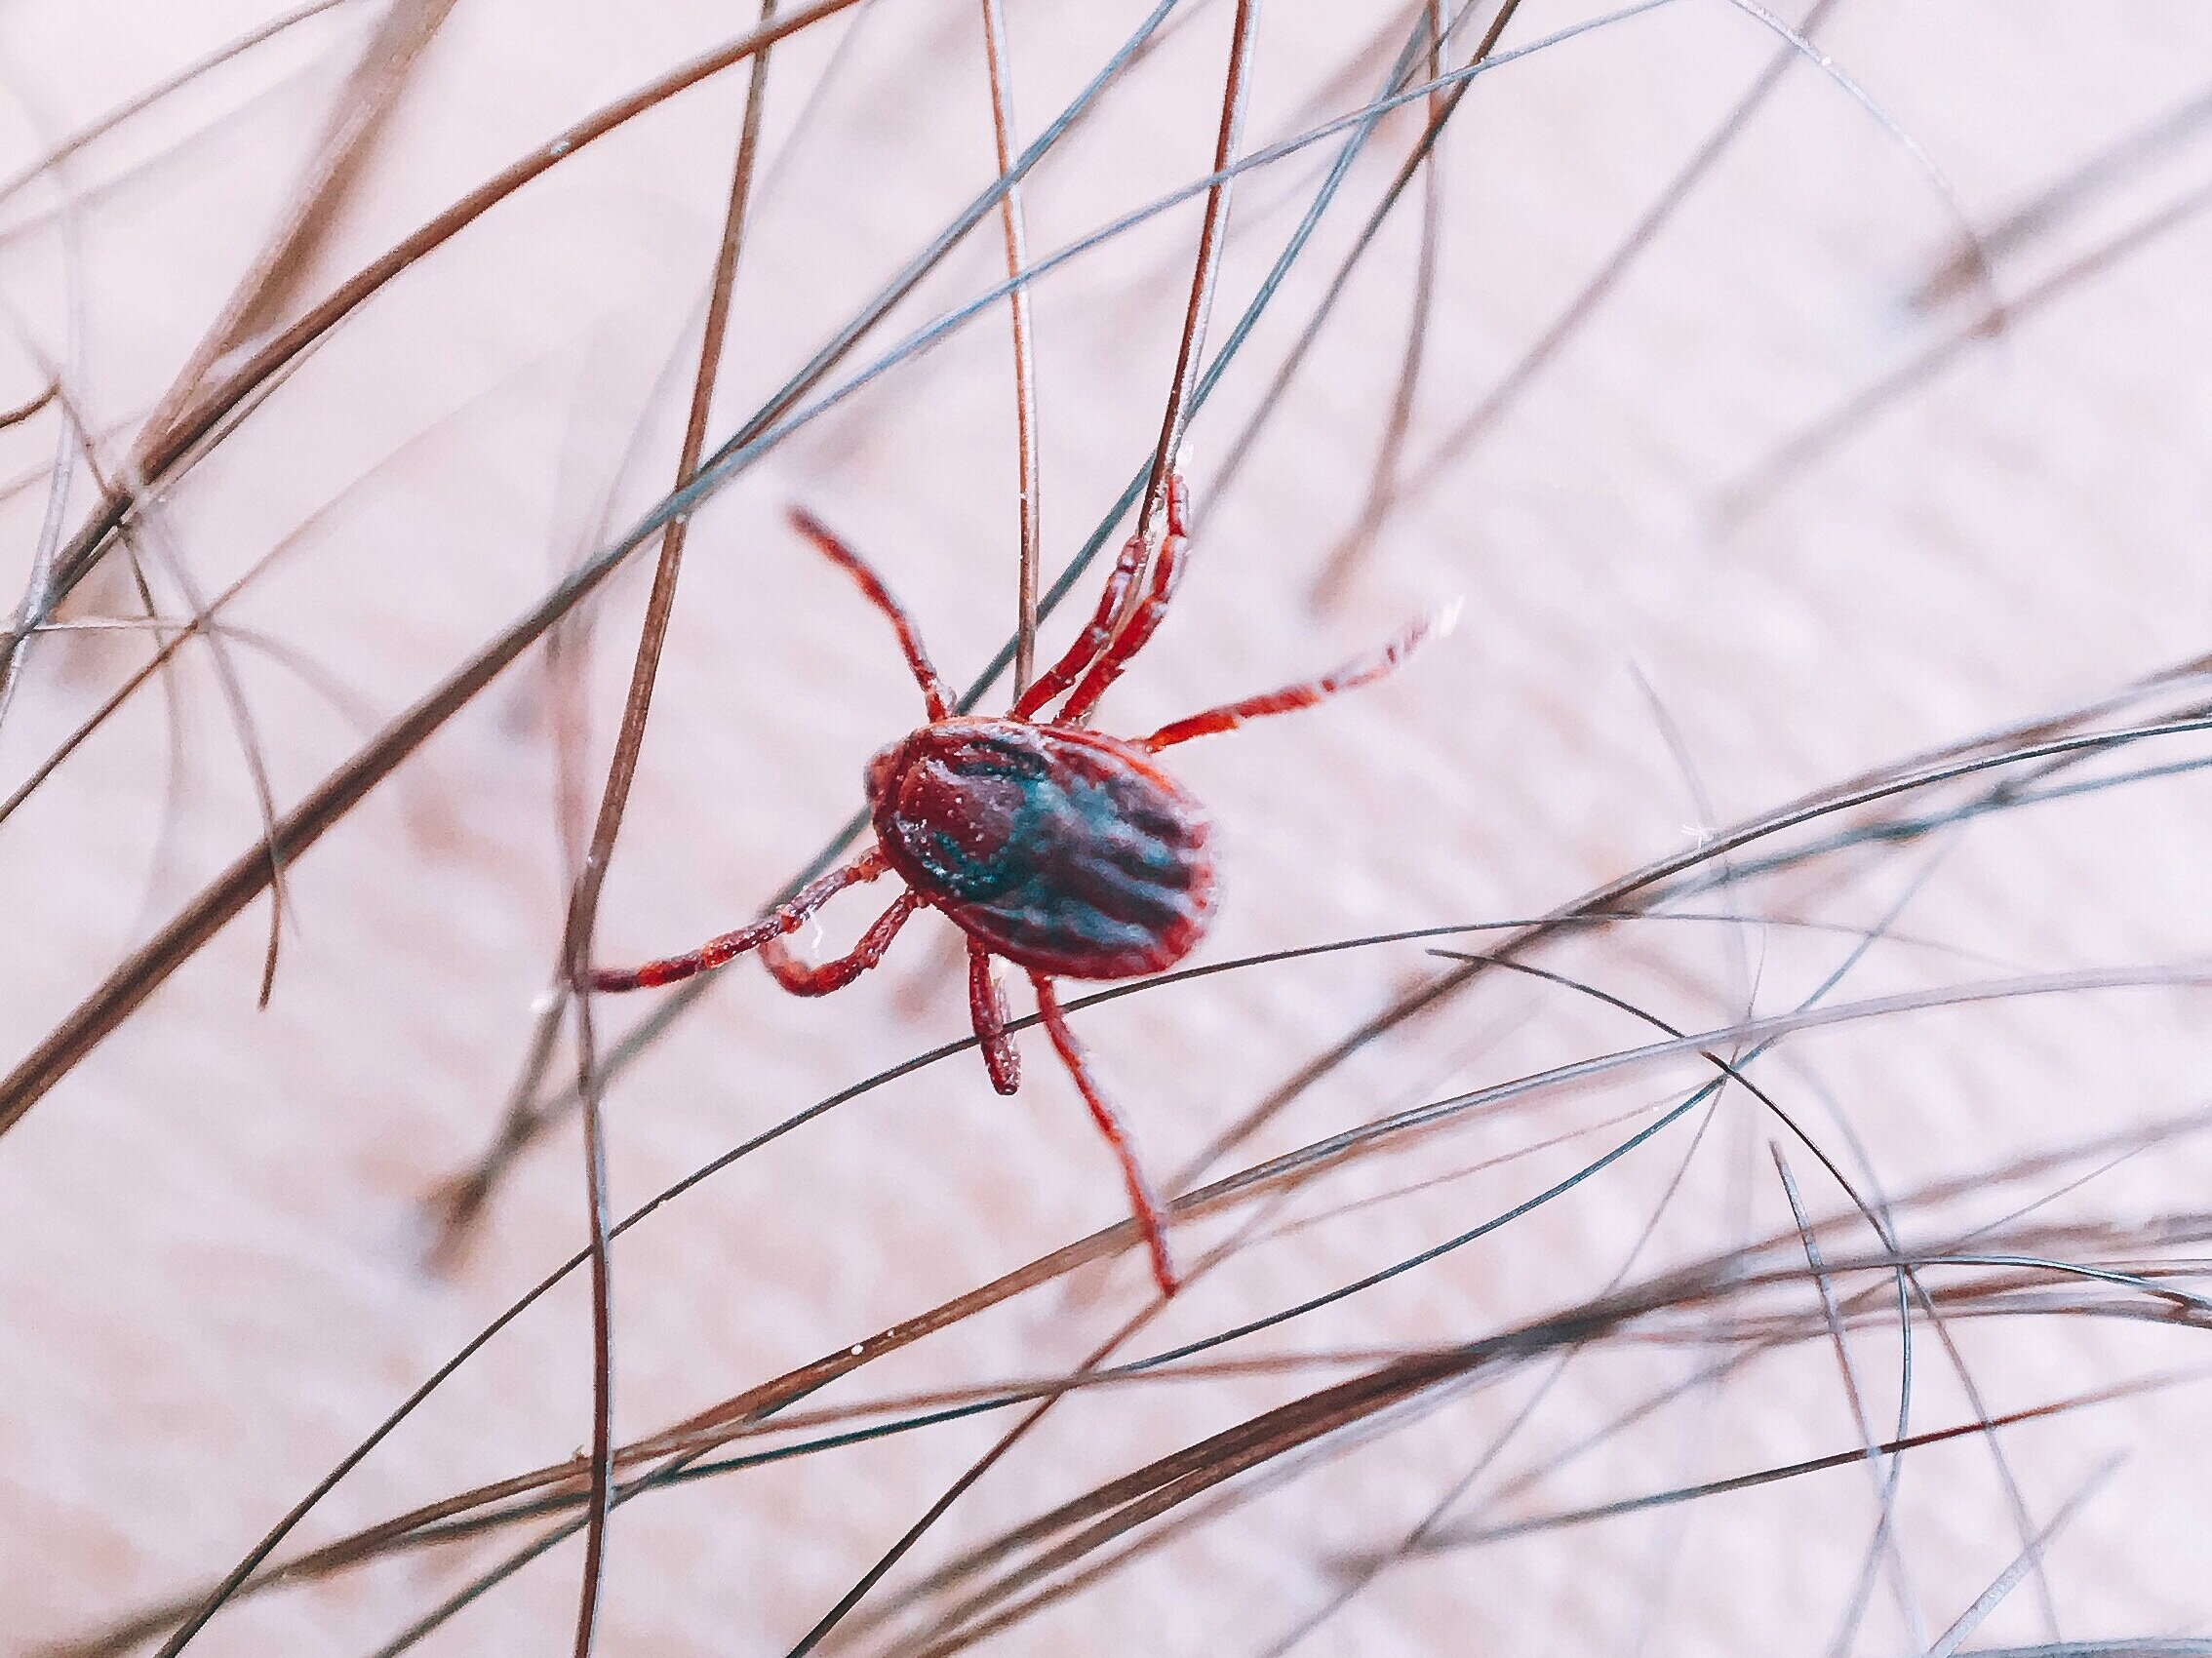 A tick clinging to hair shafts